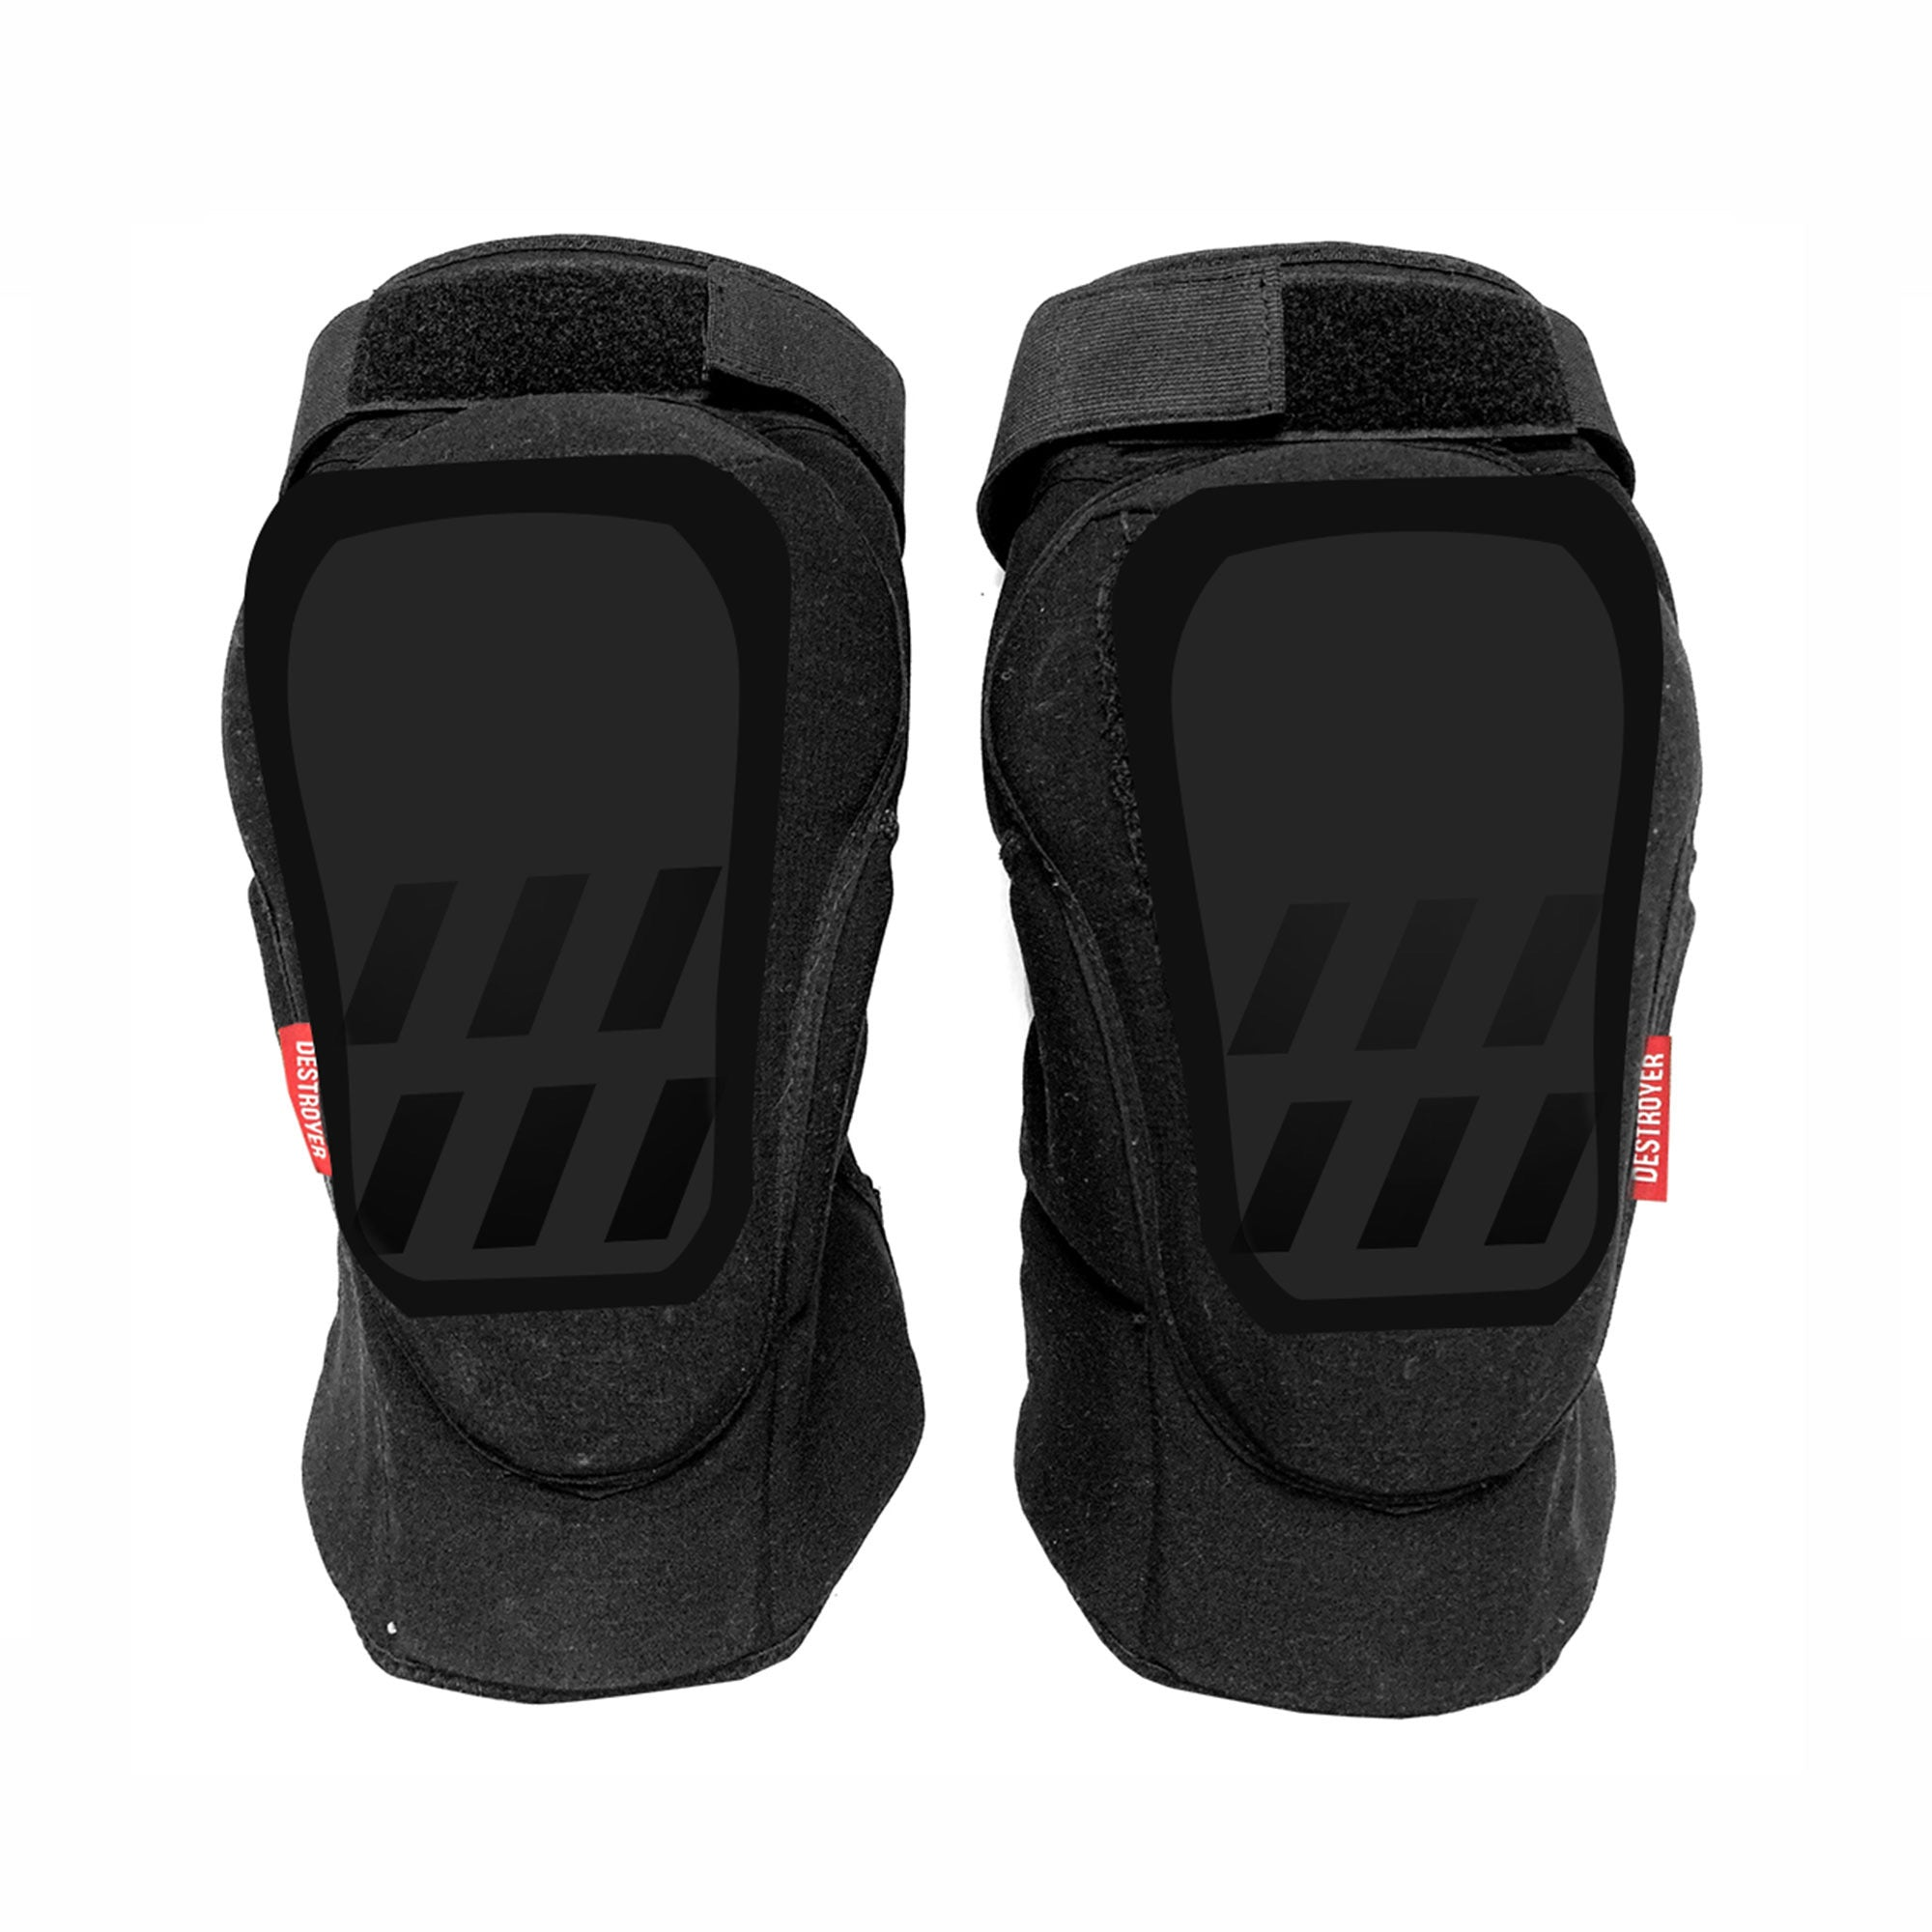 Turnstyle Knee Pads